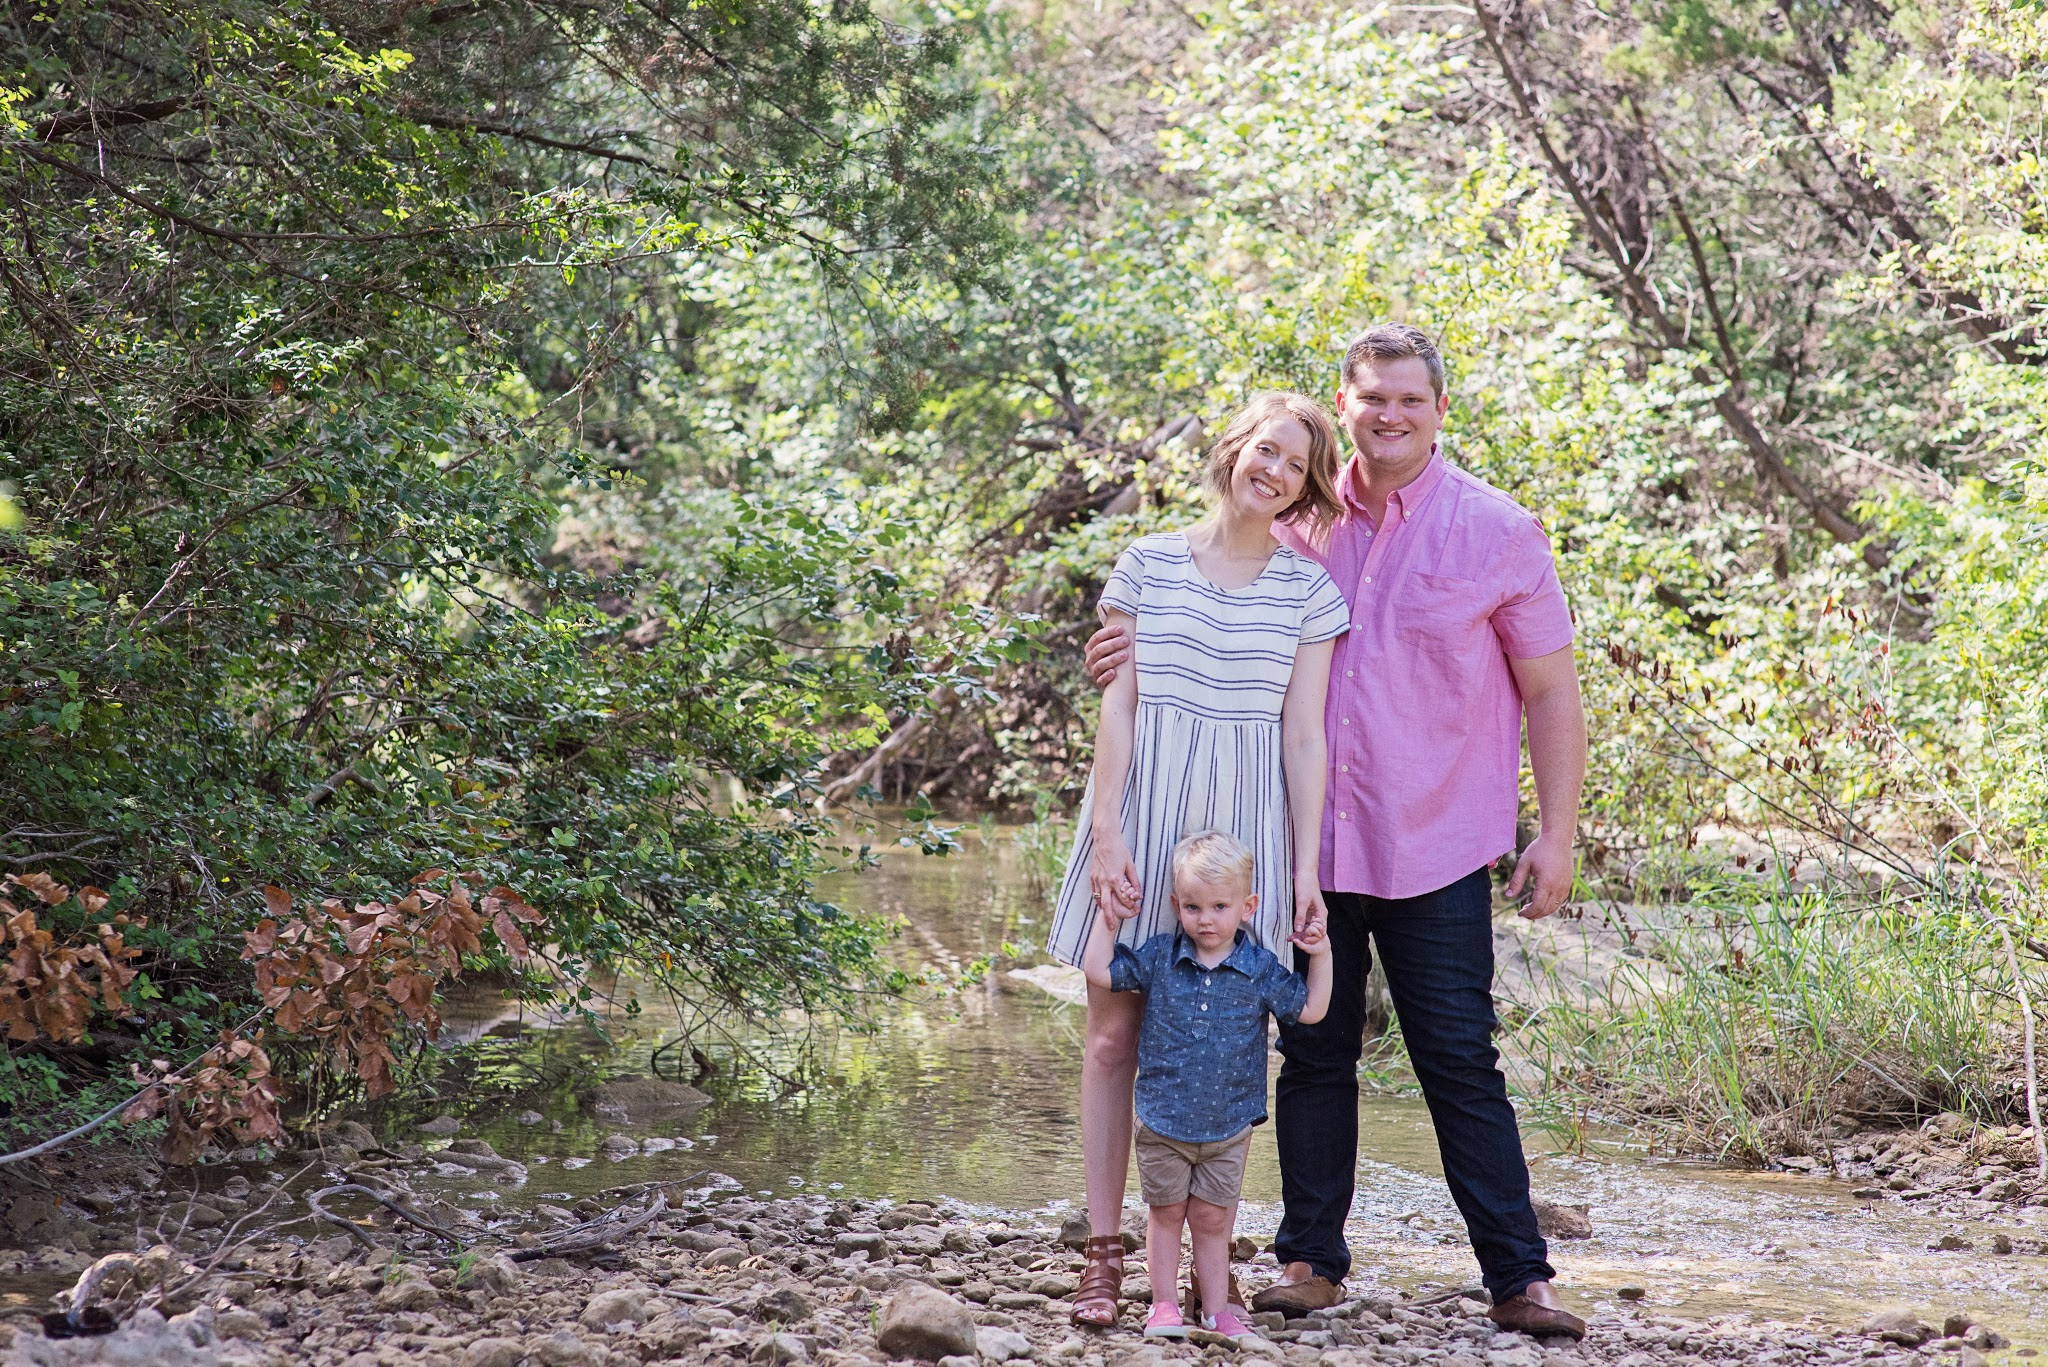 Jesse Coulter, her husband Alex and son Turner. Photo credit: Lindsey V. Rivera Photography